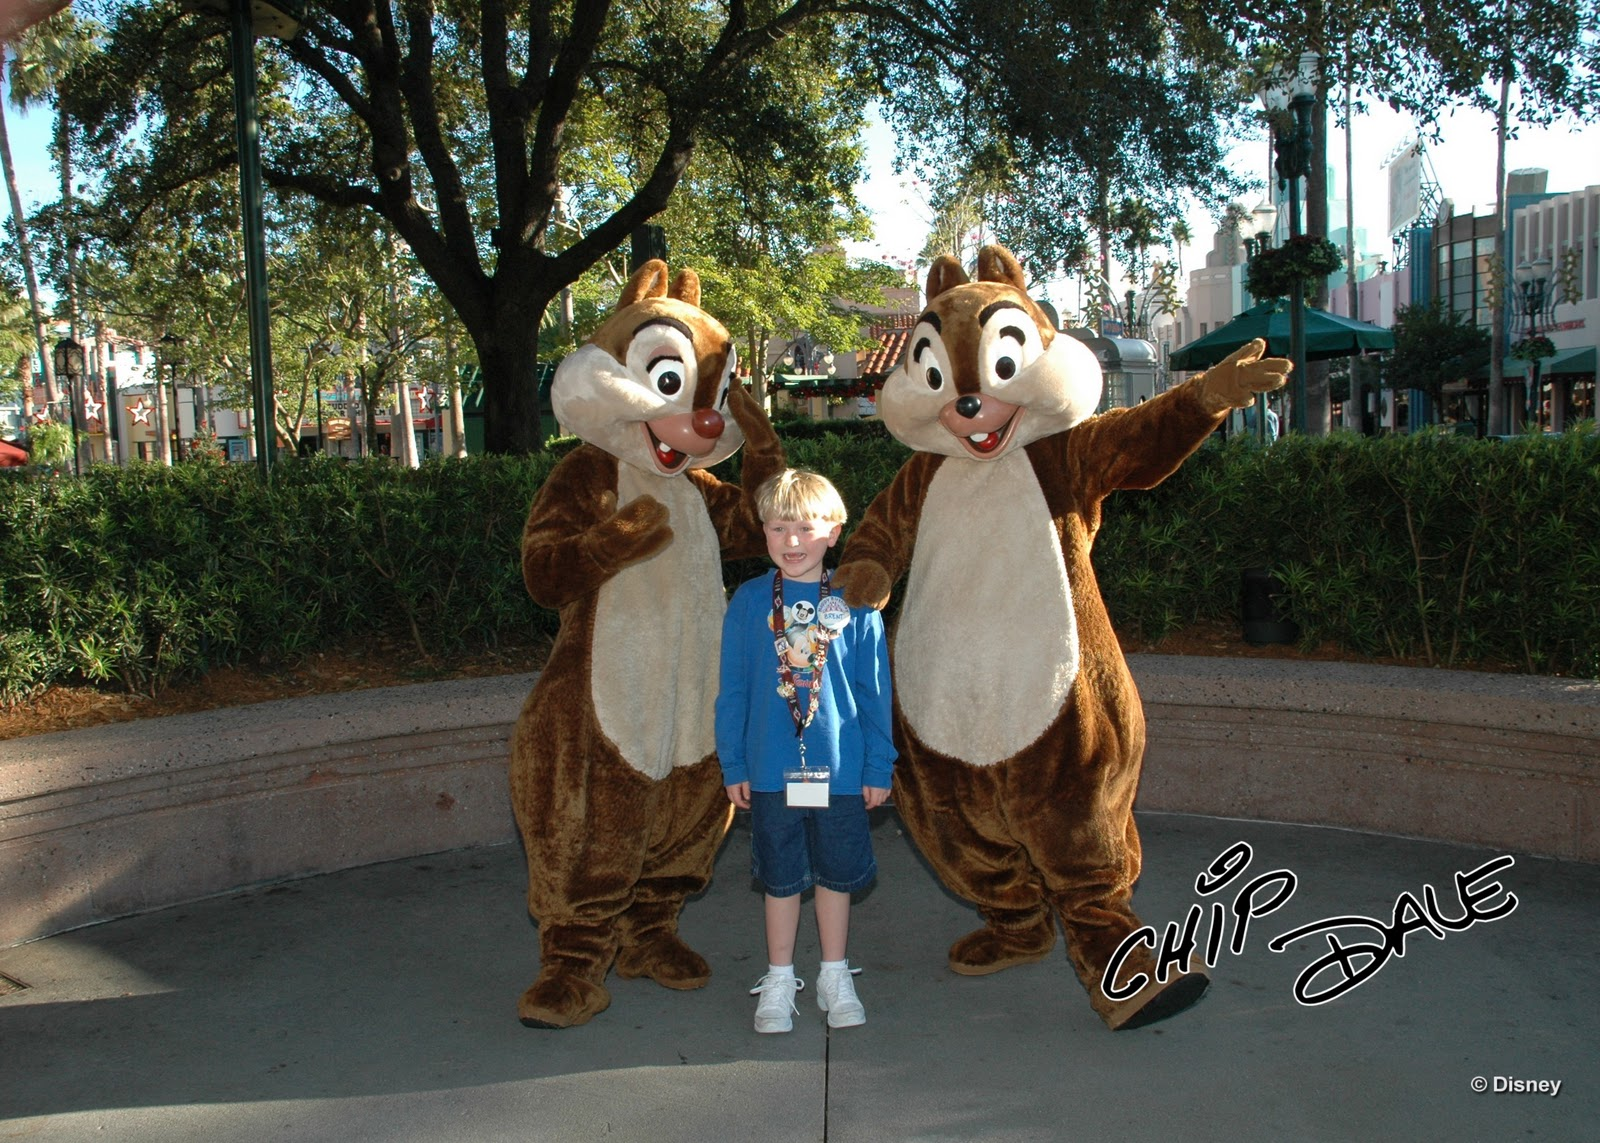 Williams Family So You Want To Meet Chip And Dale